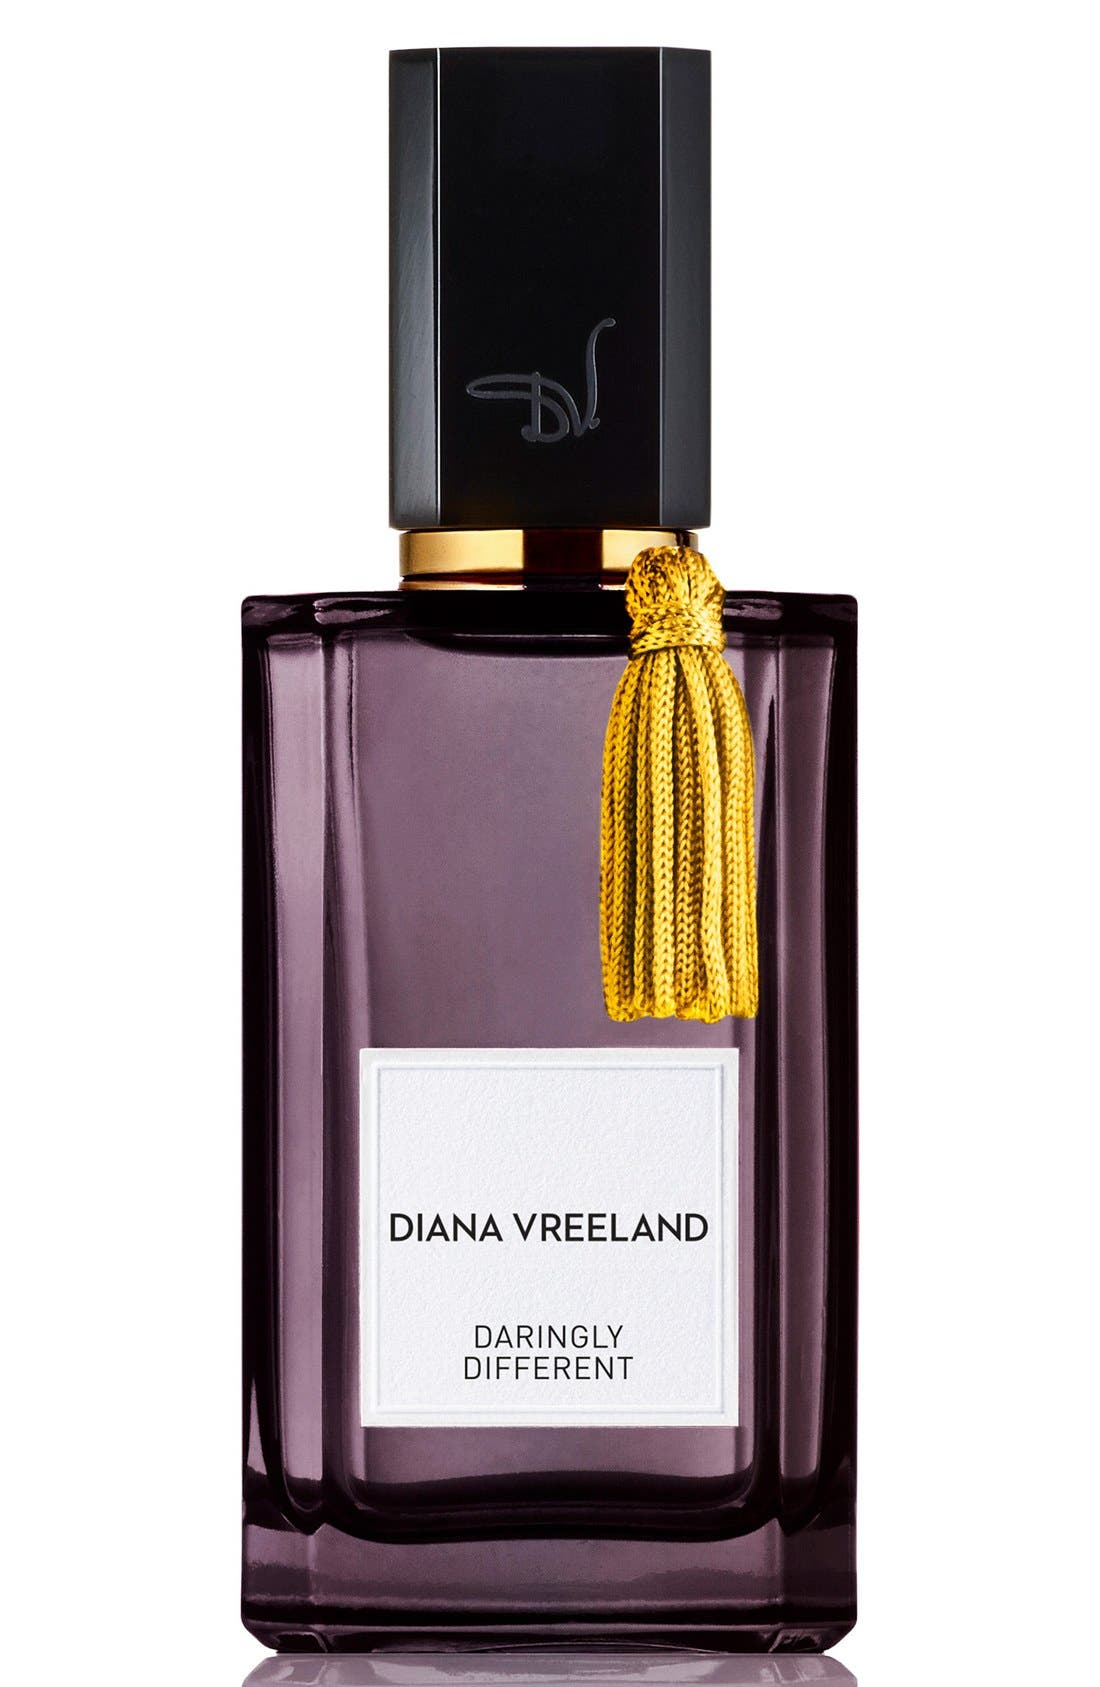 Diana Vreeland 'Daringly Different' Eau de Parfum